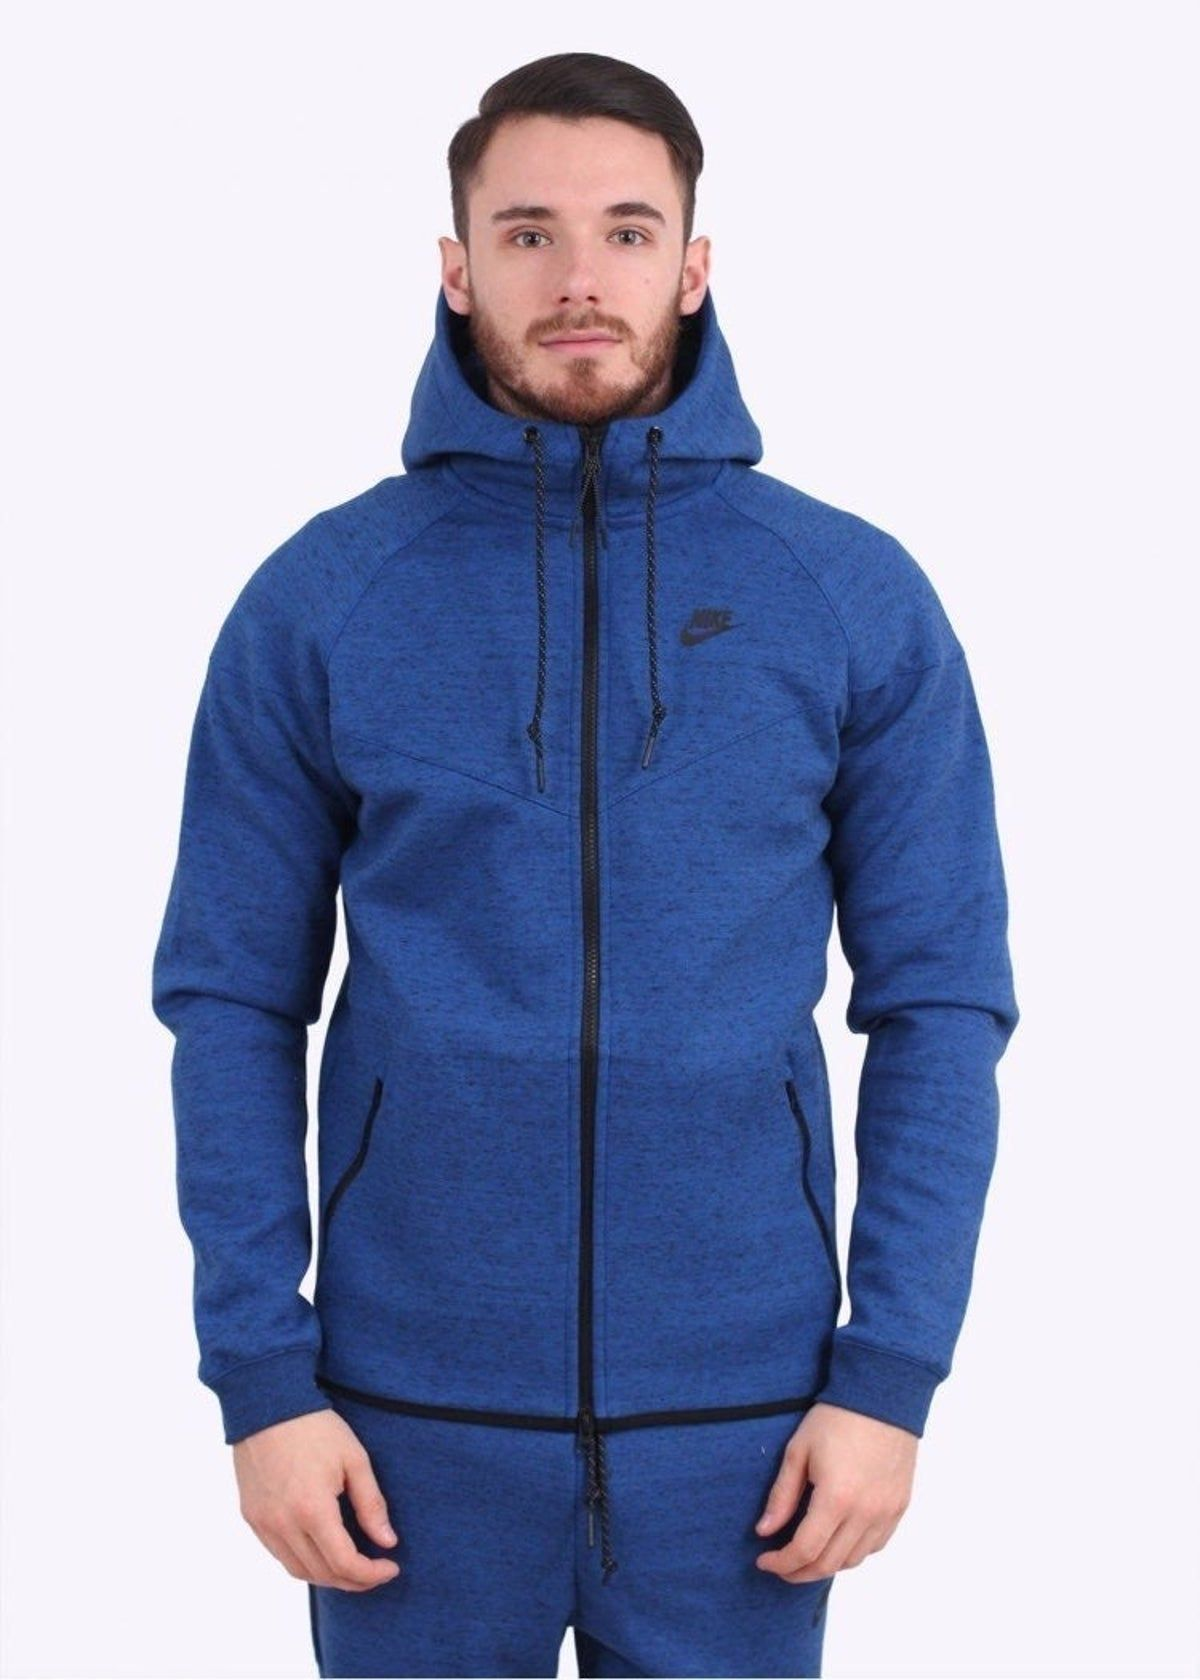 Nike Tech Fleece Hoodie in 2020 (With images) Nike tech